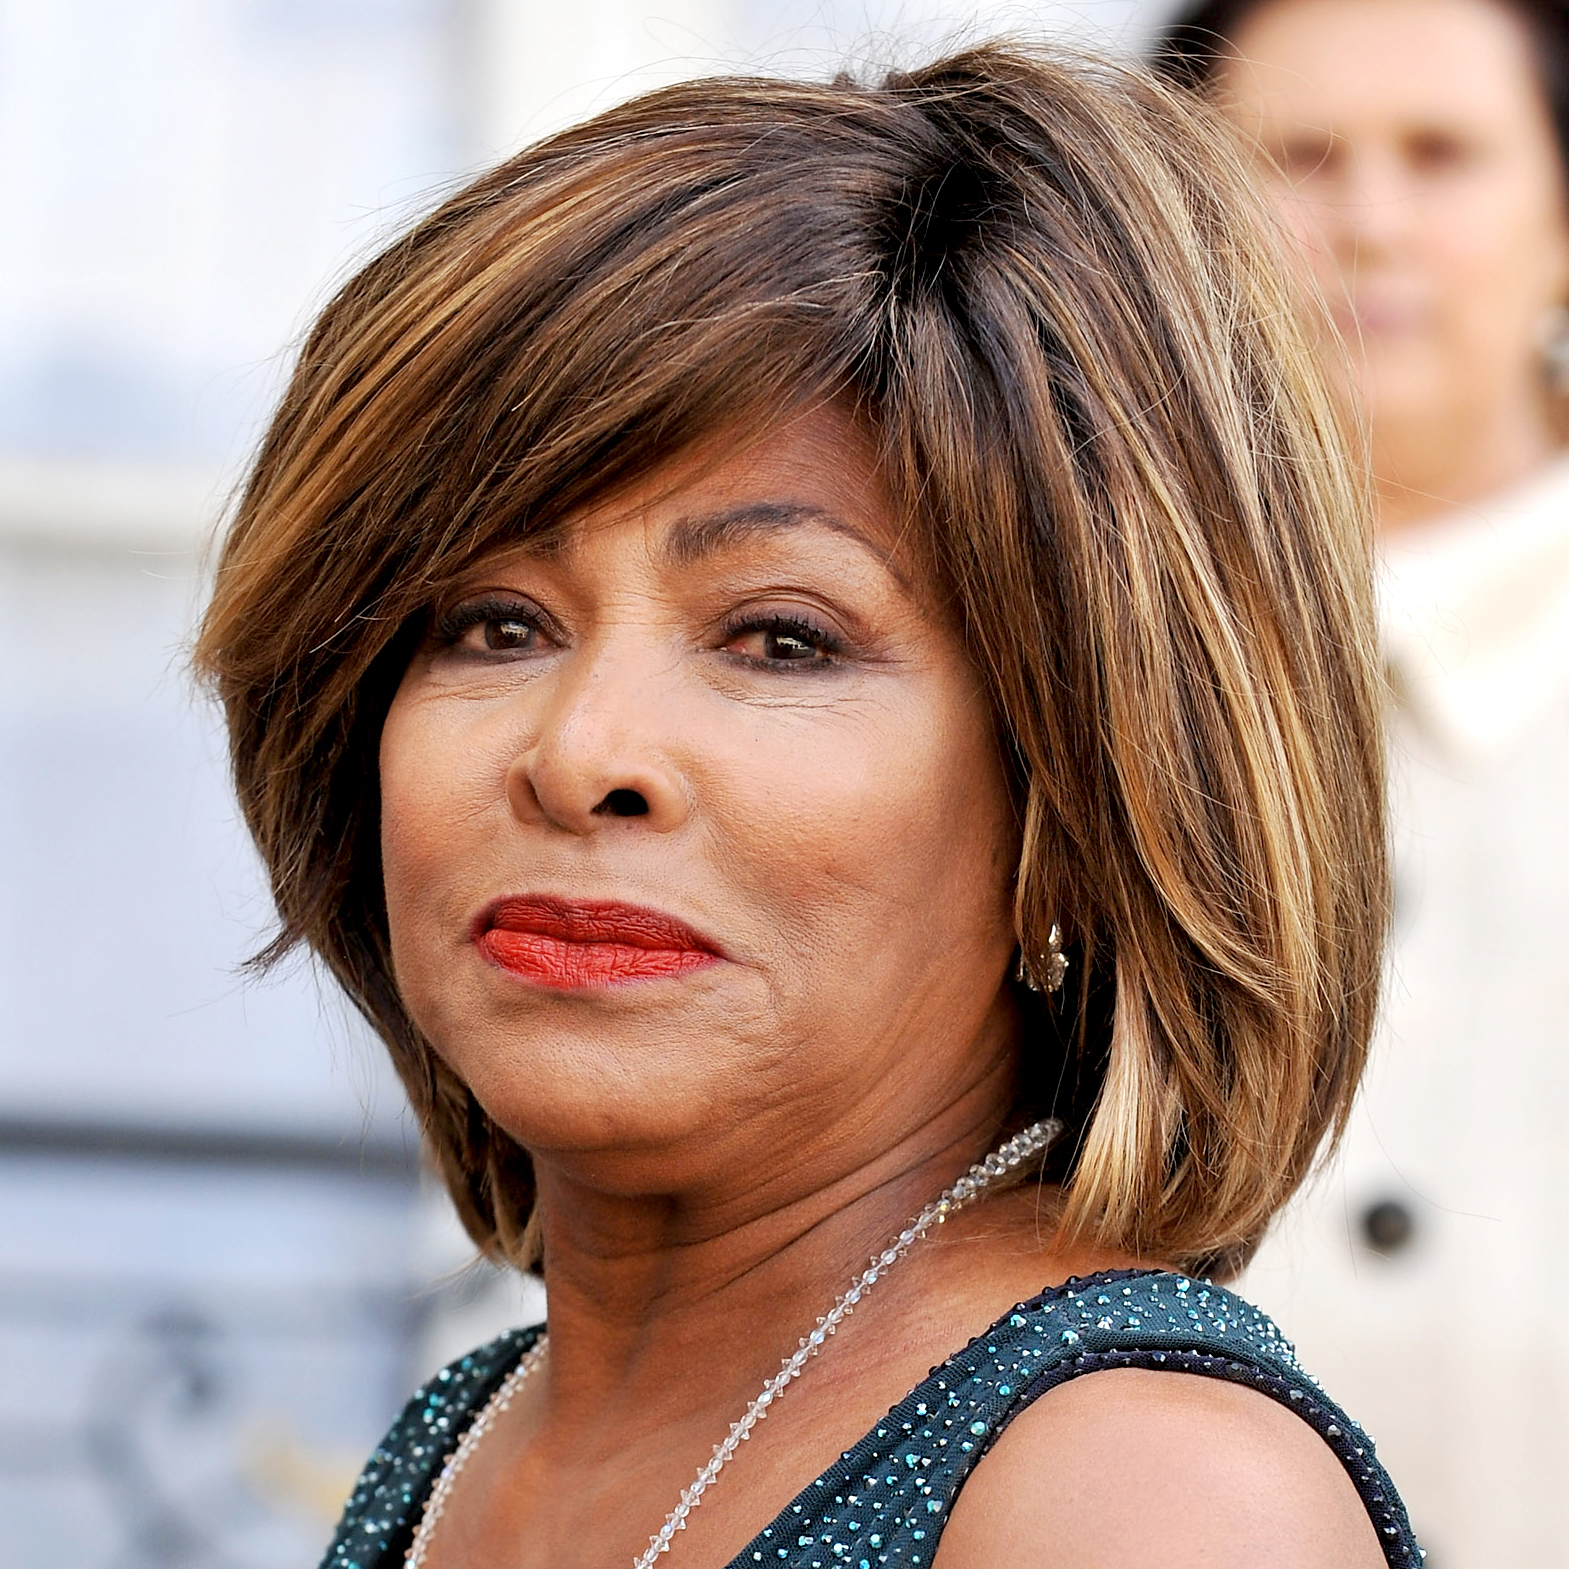 """Tina-Turner - The singer was isolated and physically abused by Ike Turner on a regular basis for most of their 16-year marriage. """"I have had, basically, my face bashed in, and I never did anything about it,"""" she said after their 1978 divorce."""